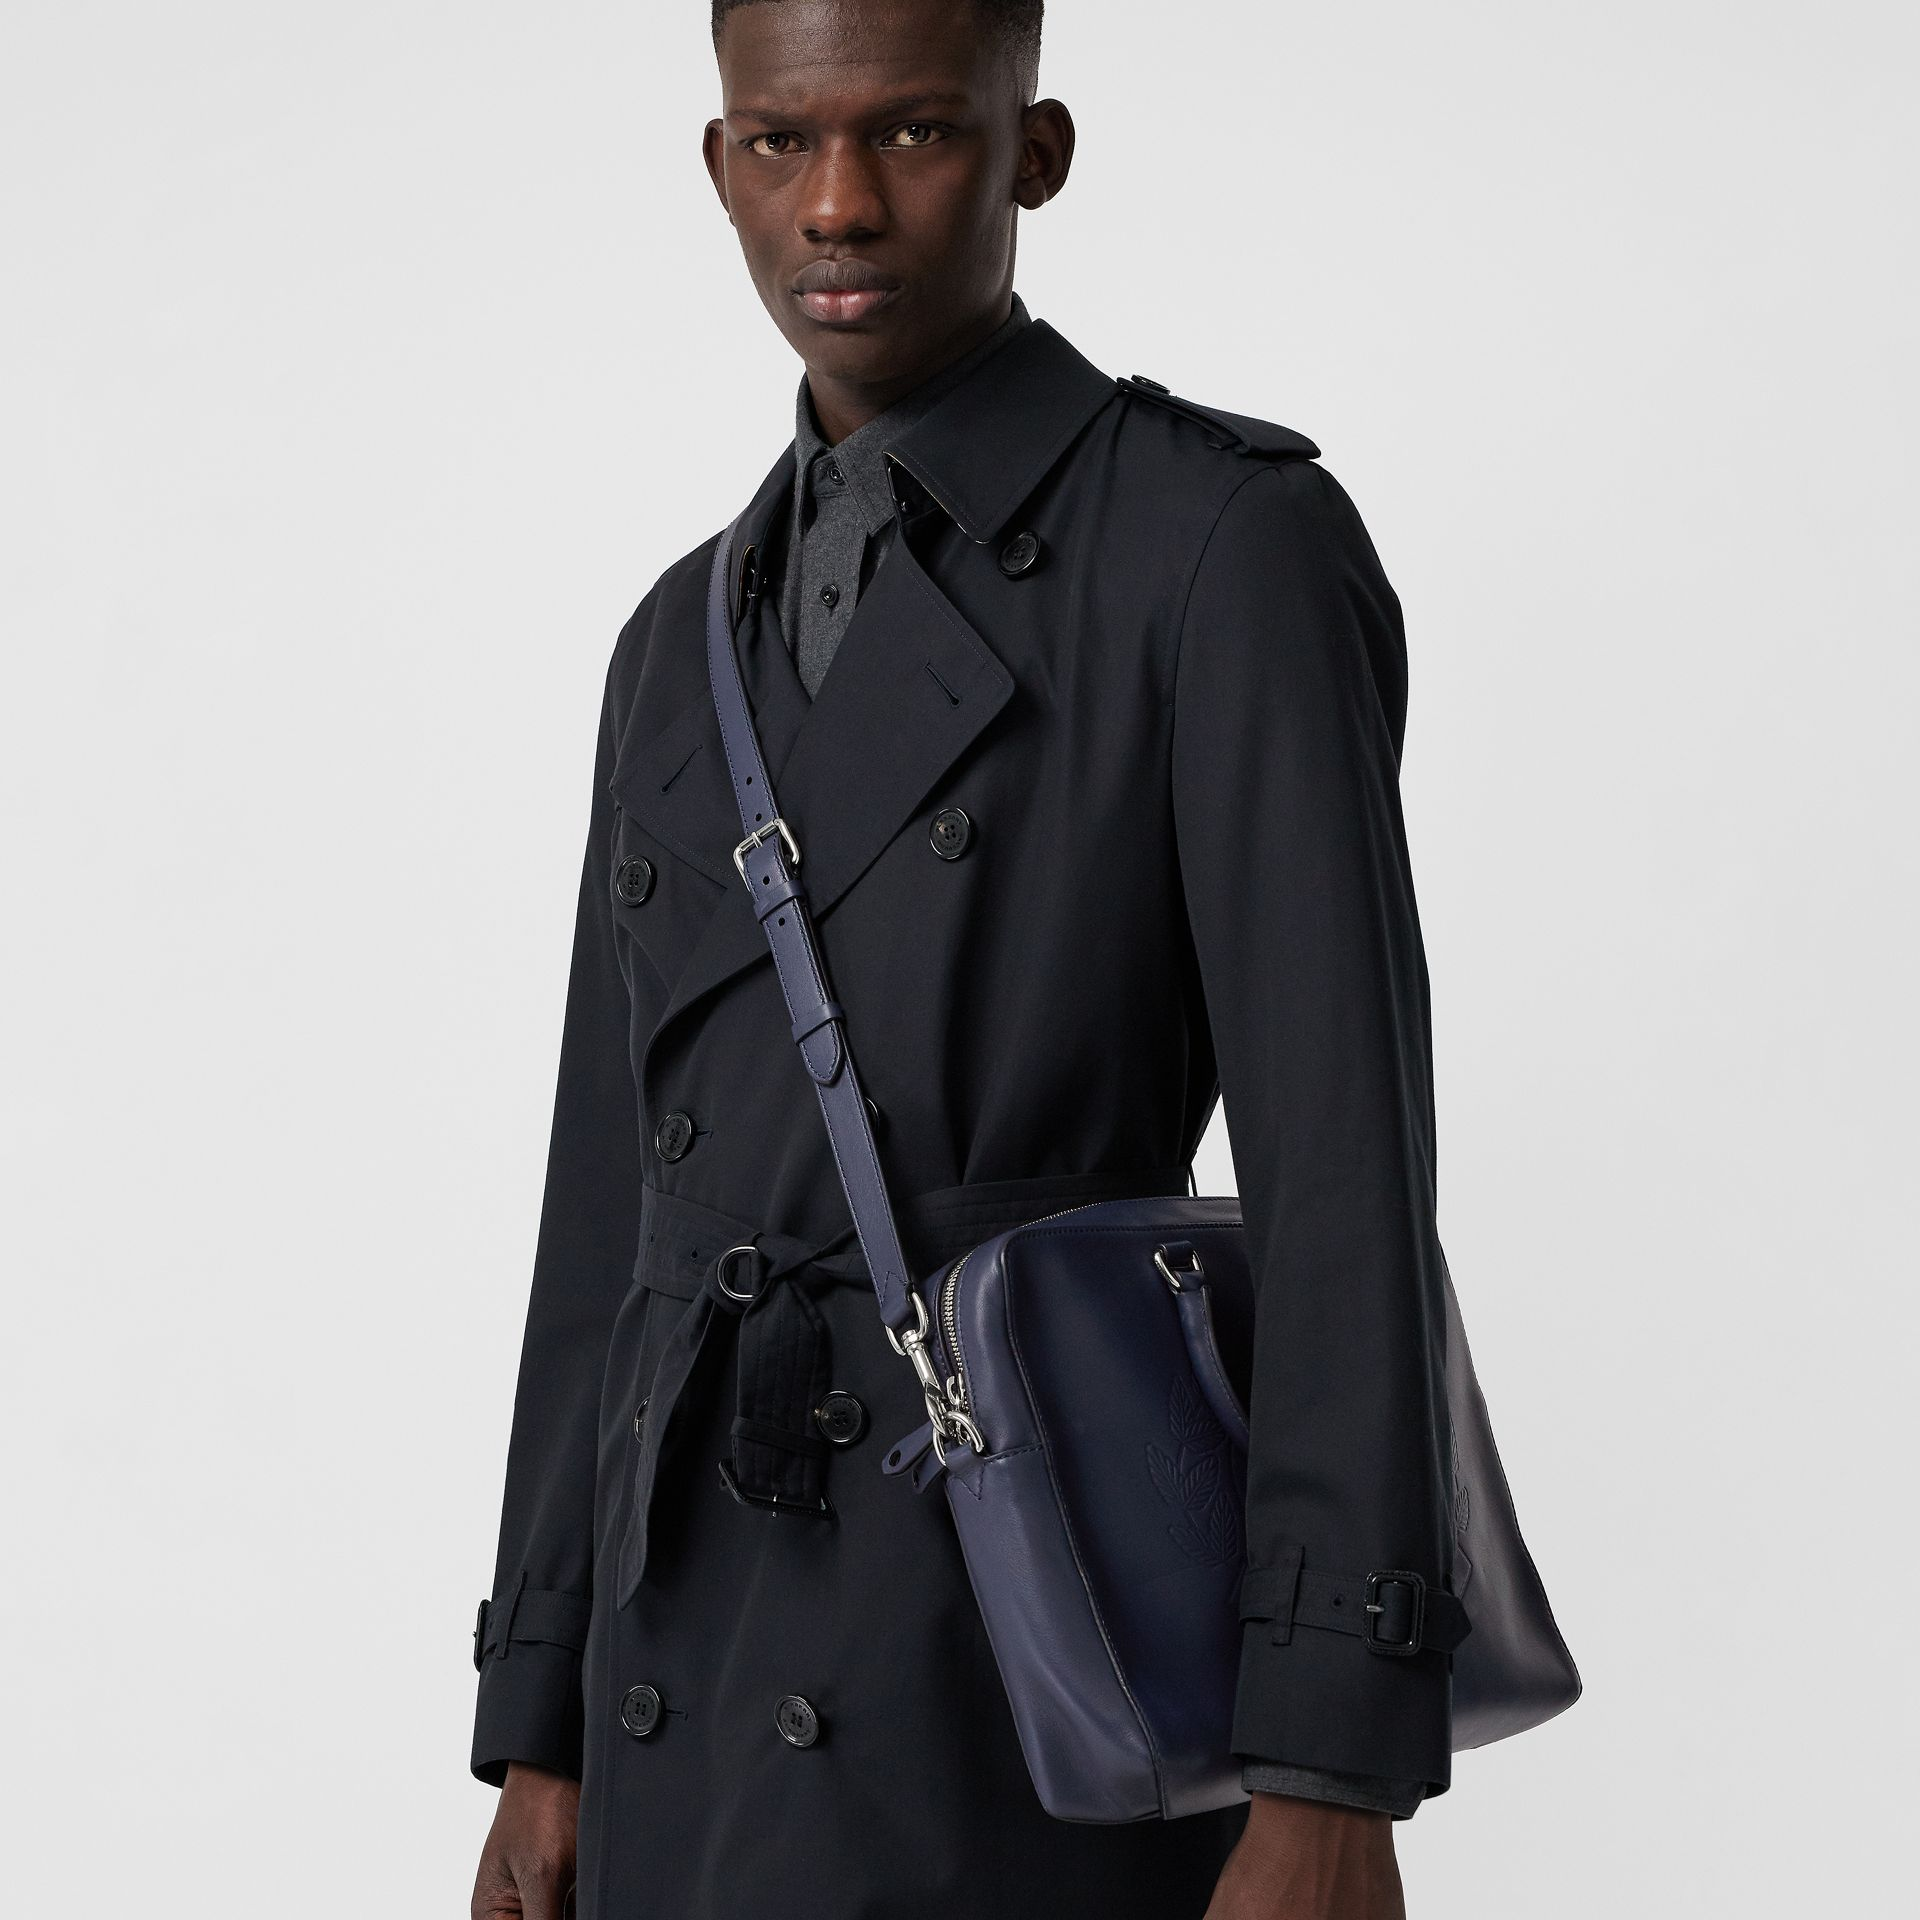 Attaché-case en cuir avec écusson estampé (Bleu Régence) - Homme | Burberry - photo de la galerie 3